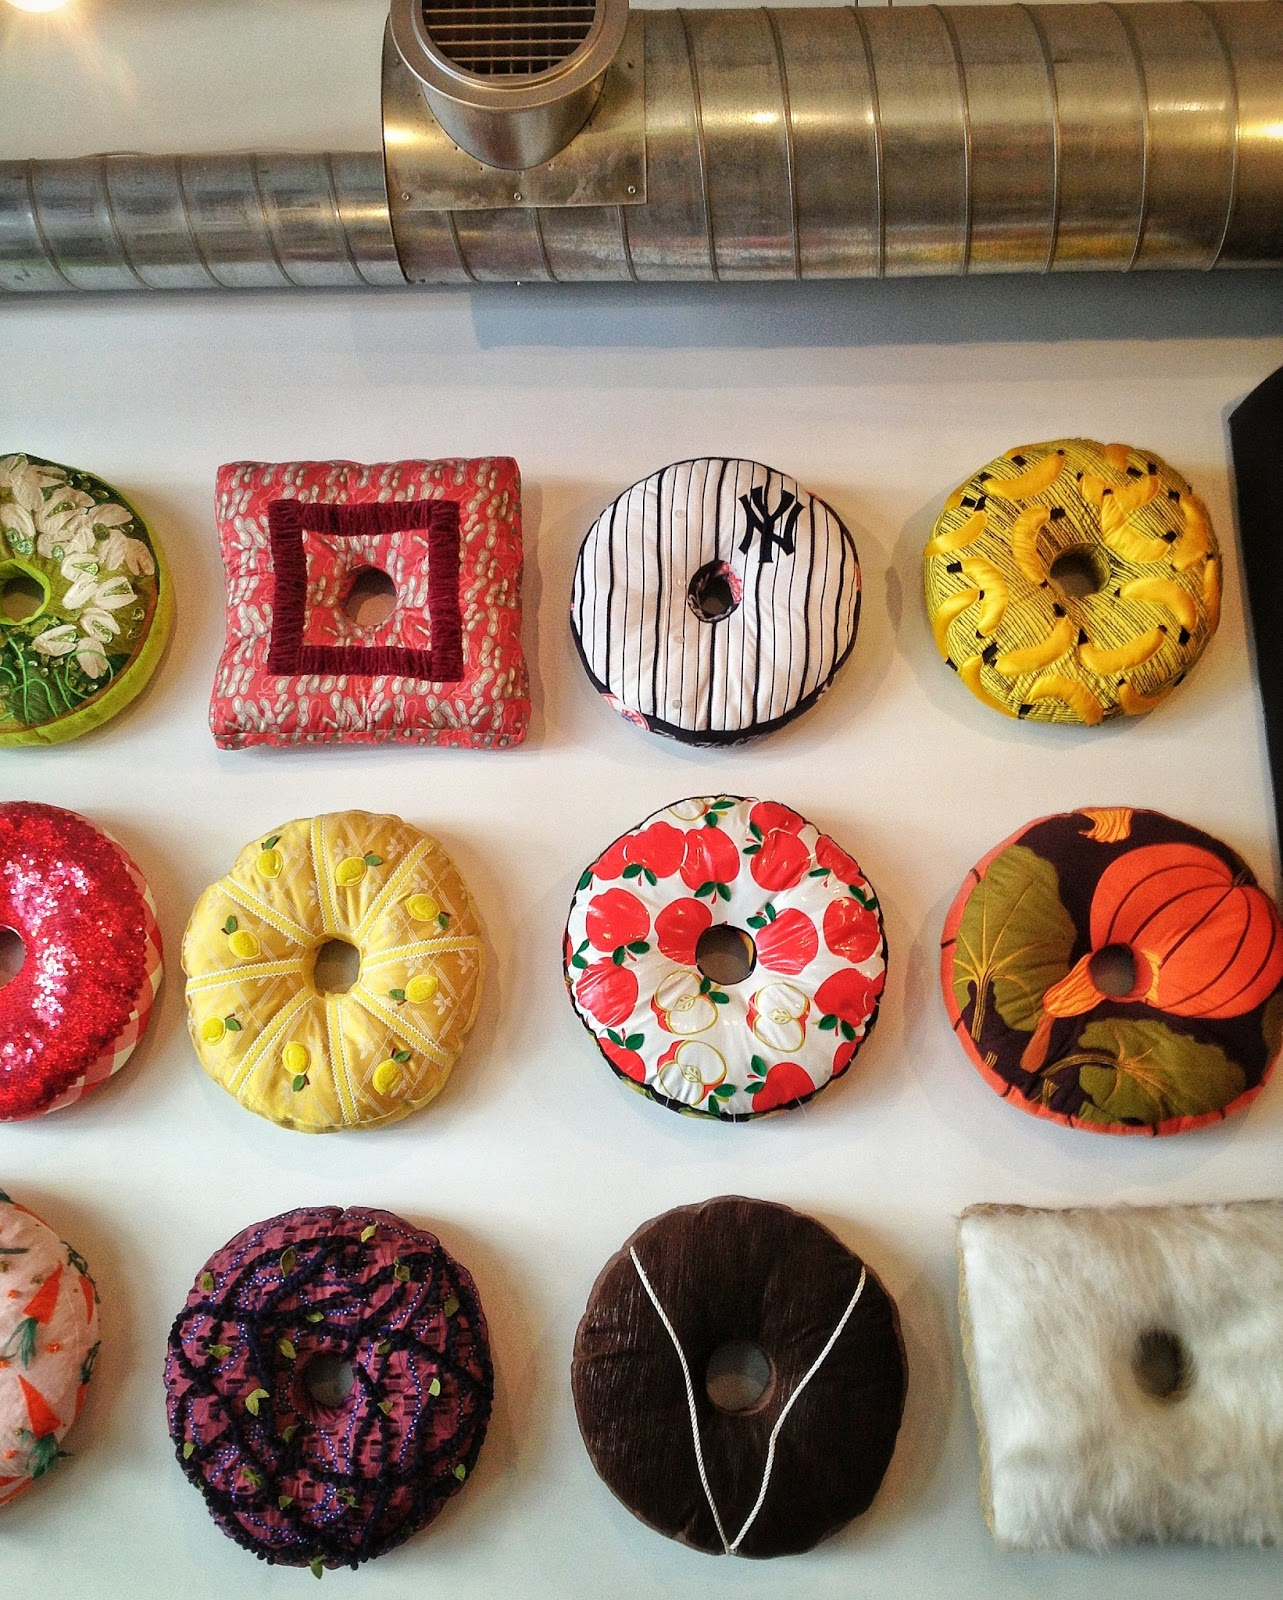 Doughnut Plant: New York City Doughnut Magic